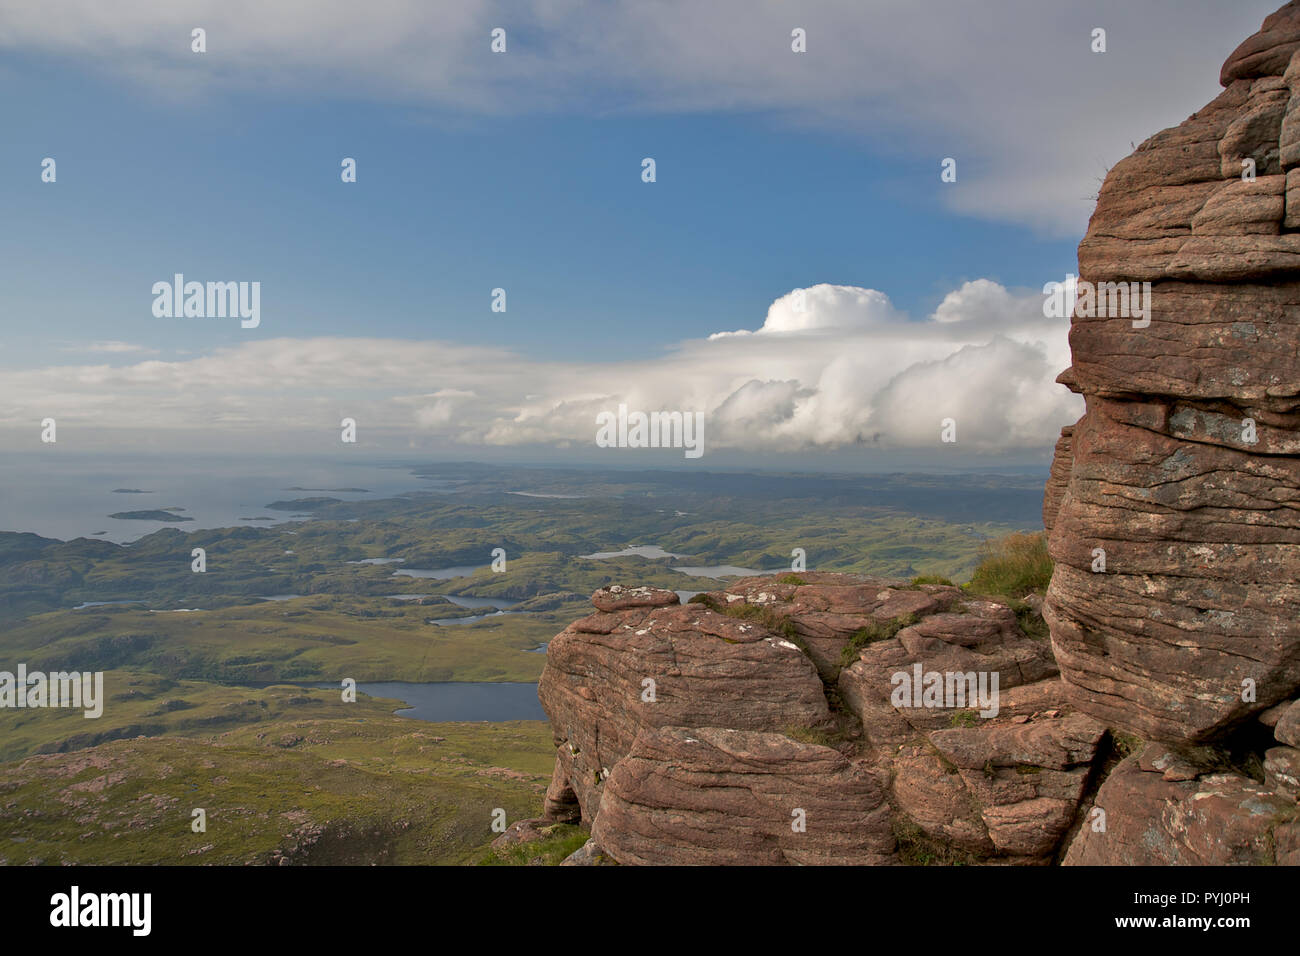 High view over Assynt, Scotland from ridge on Stac Pollaidh mountain Stock Photo